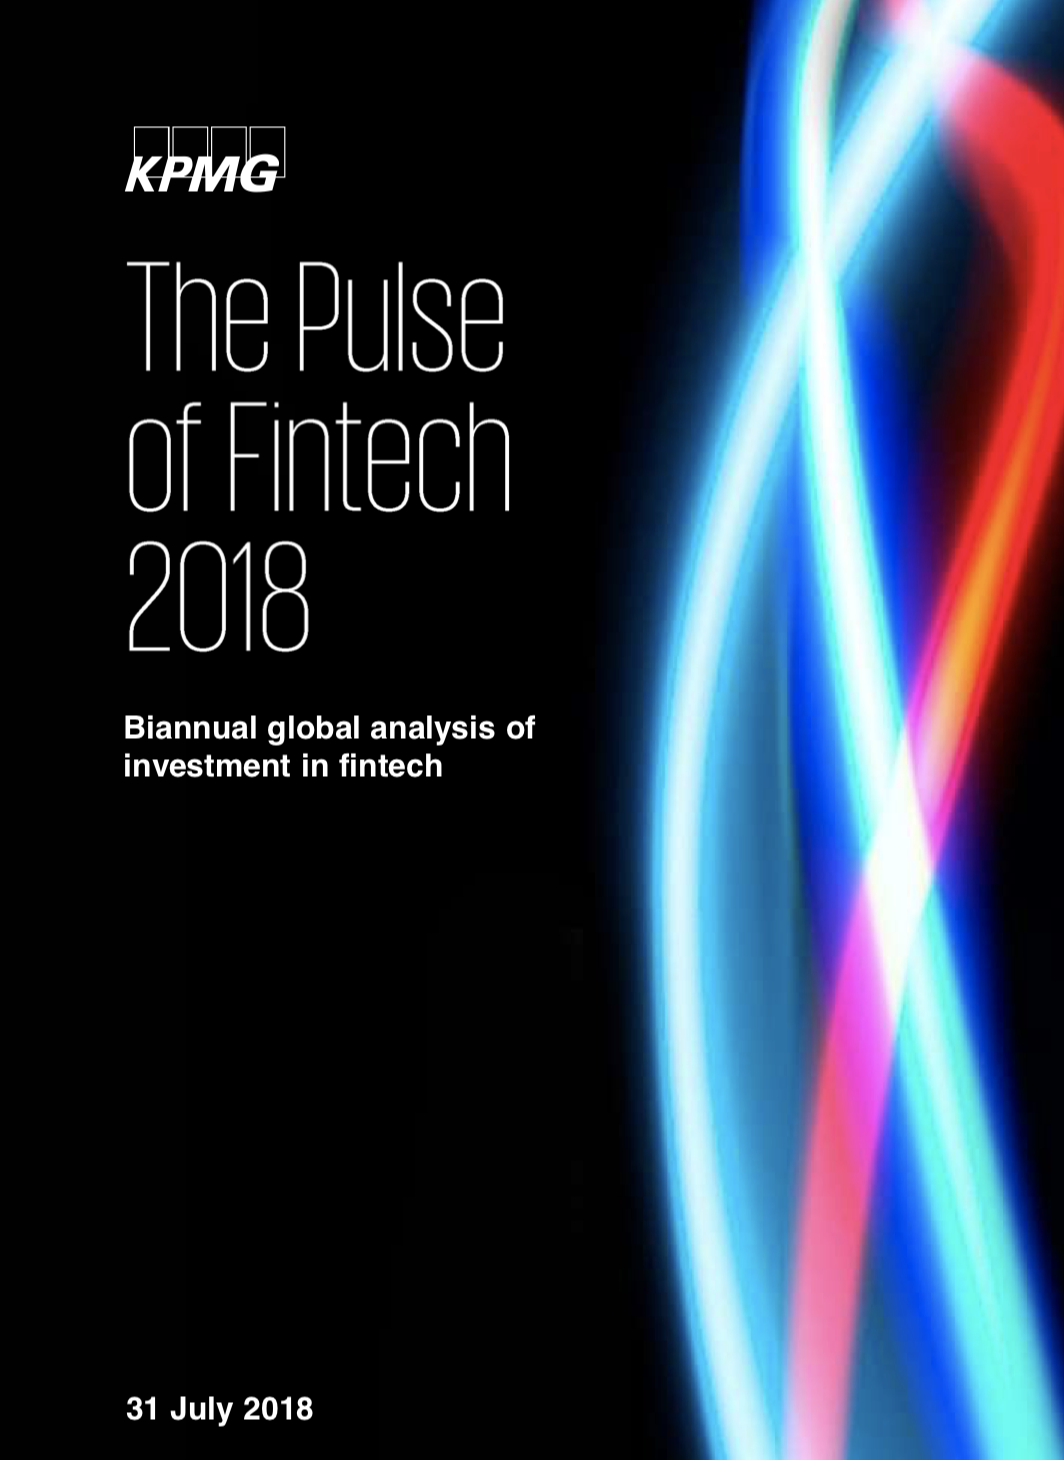 The Pulse of FinTech 2018 H1